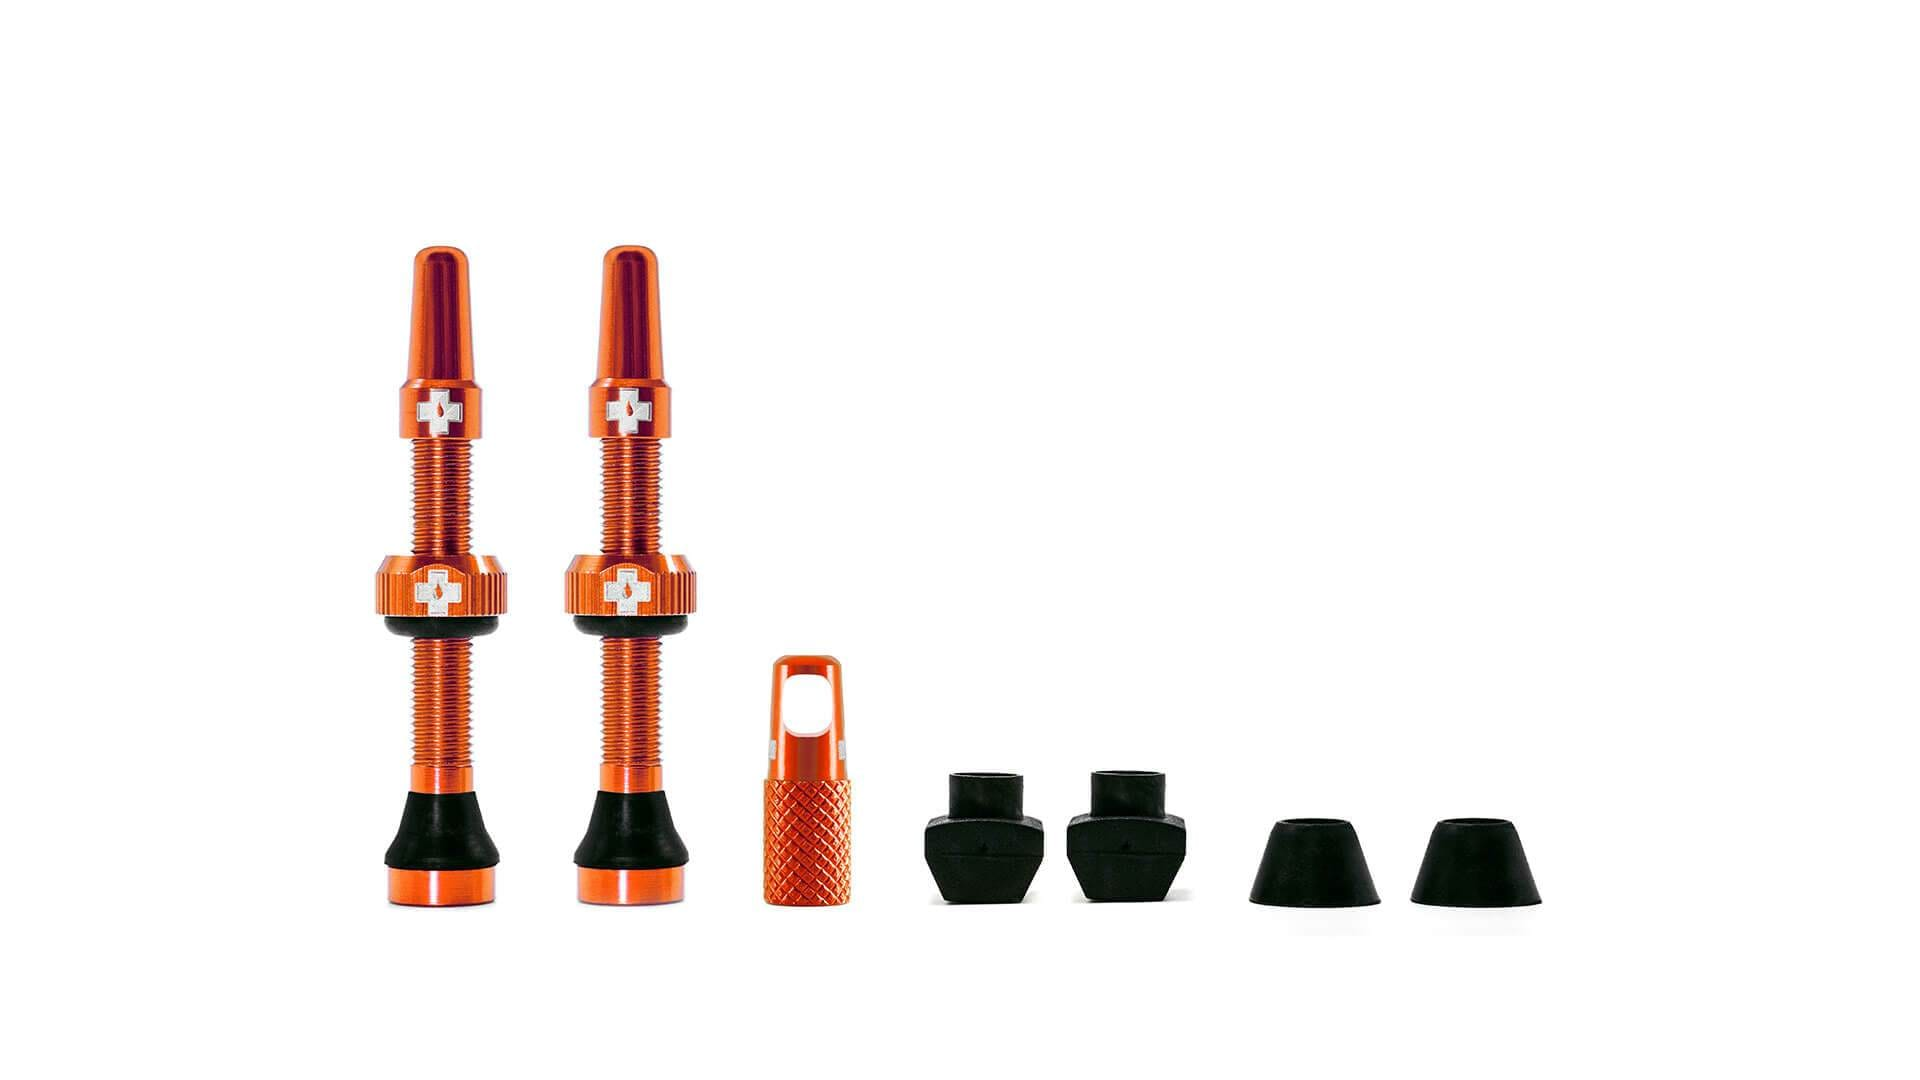 Muc-Off Ventil, Tubeless Valve Kit, Orange